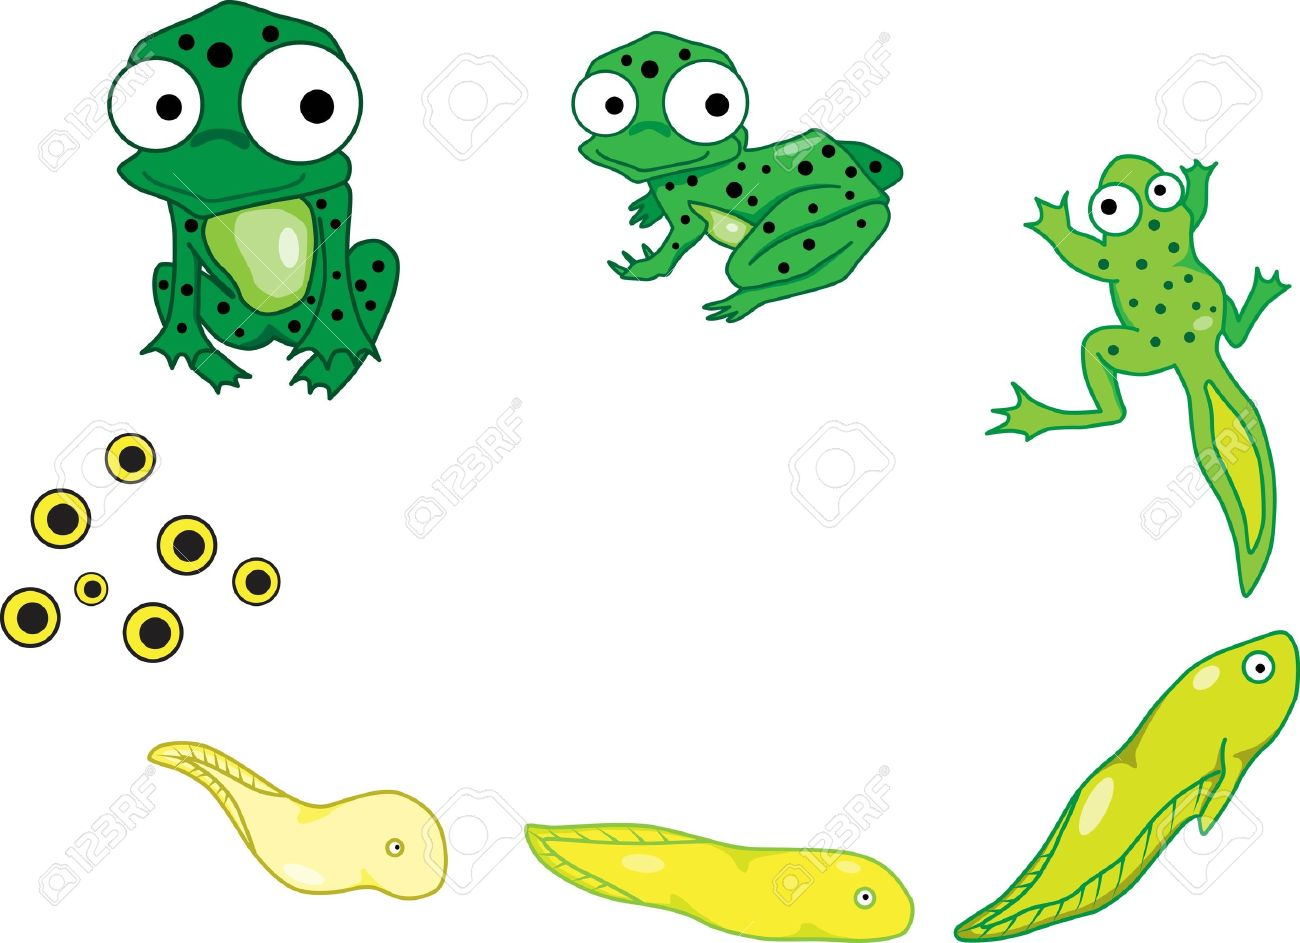 76 frog life cycle stock illustrations cliparts and royalty free